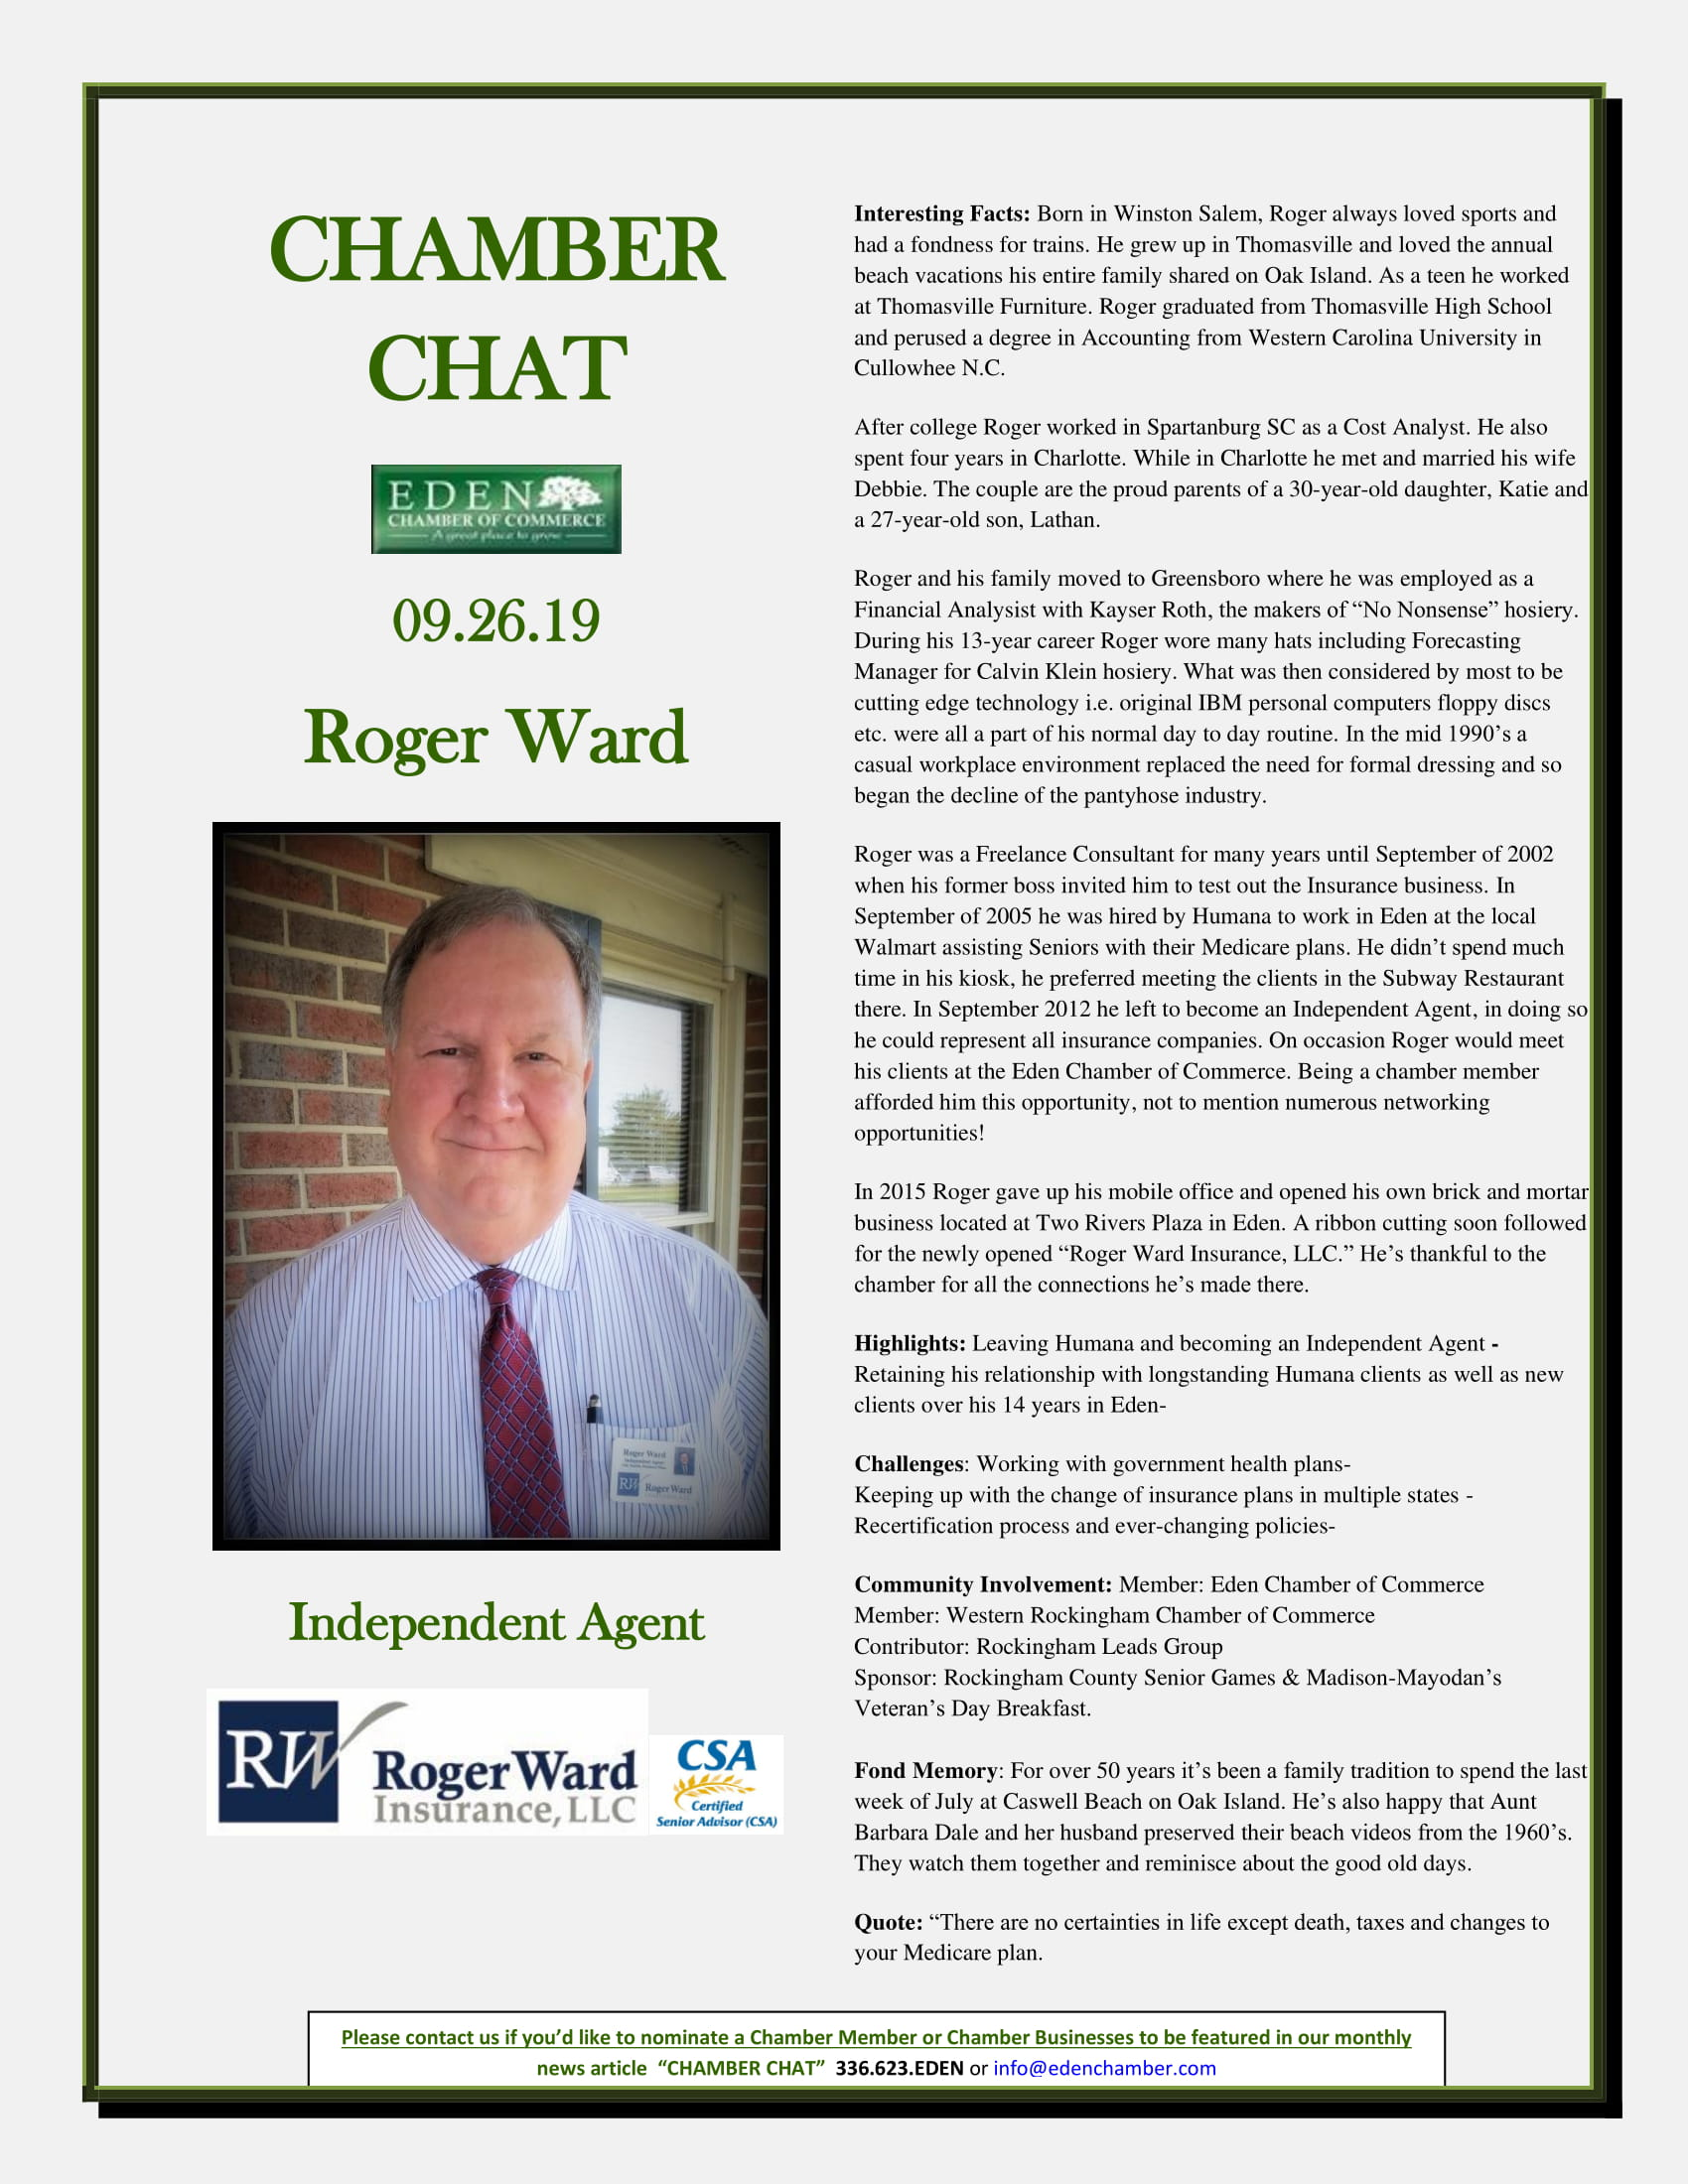 CHAMBER-CHAT-Roger-Ward--Independent-Insurance-Agent-9.26.19-1.jpg